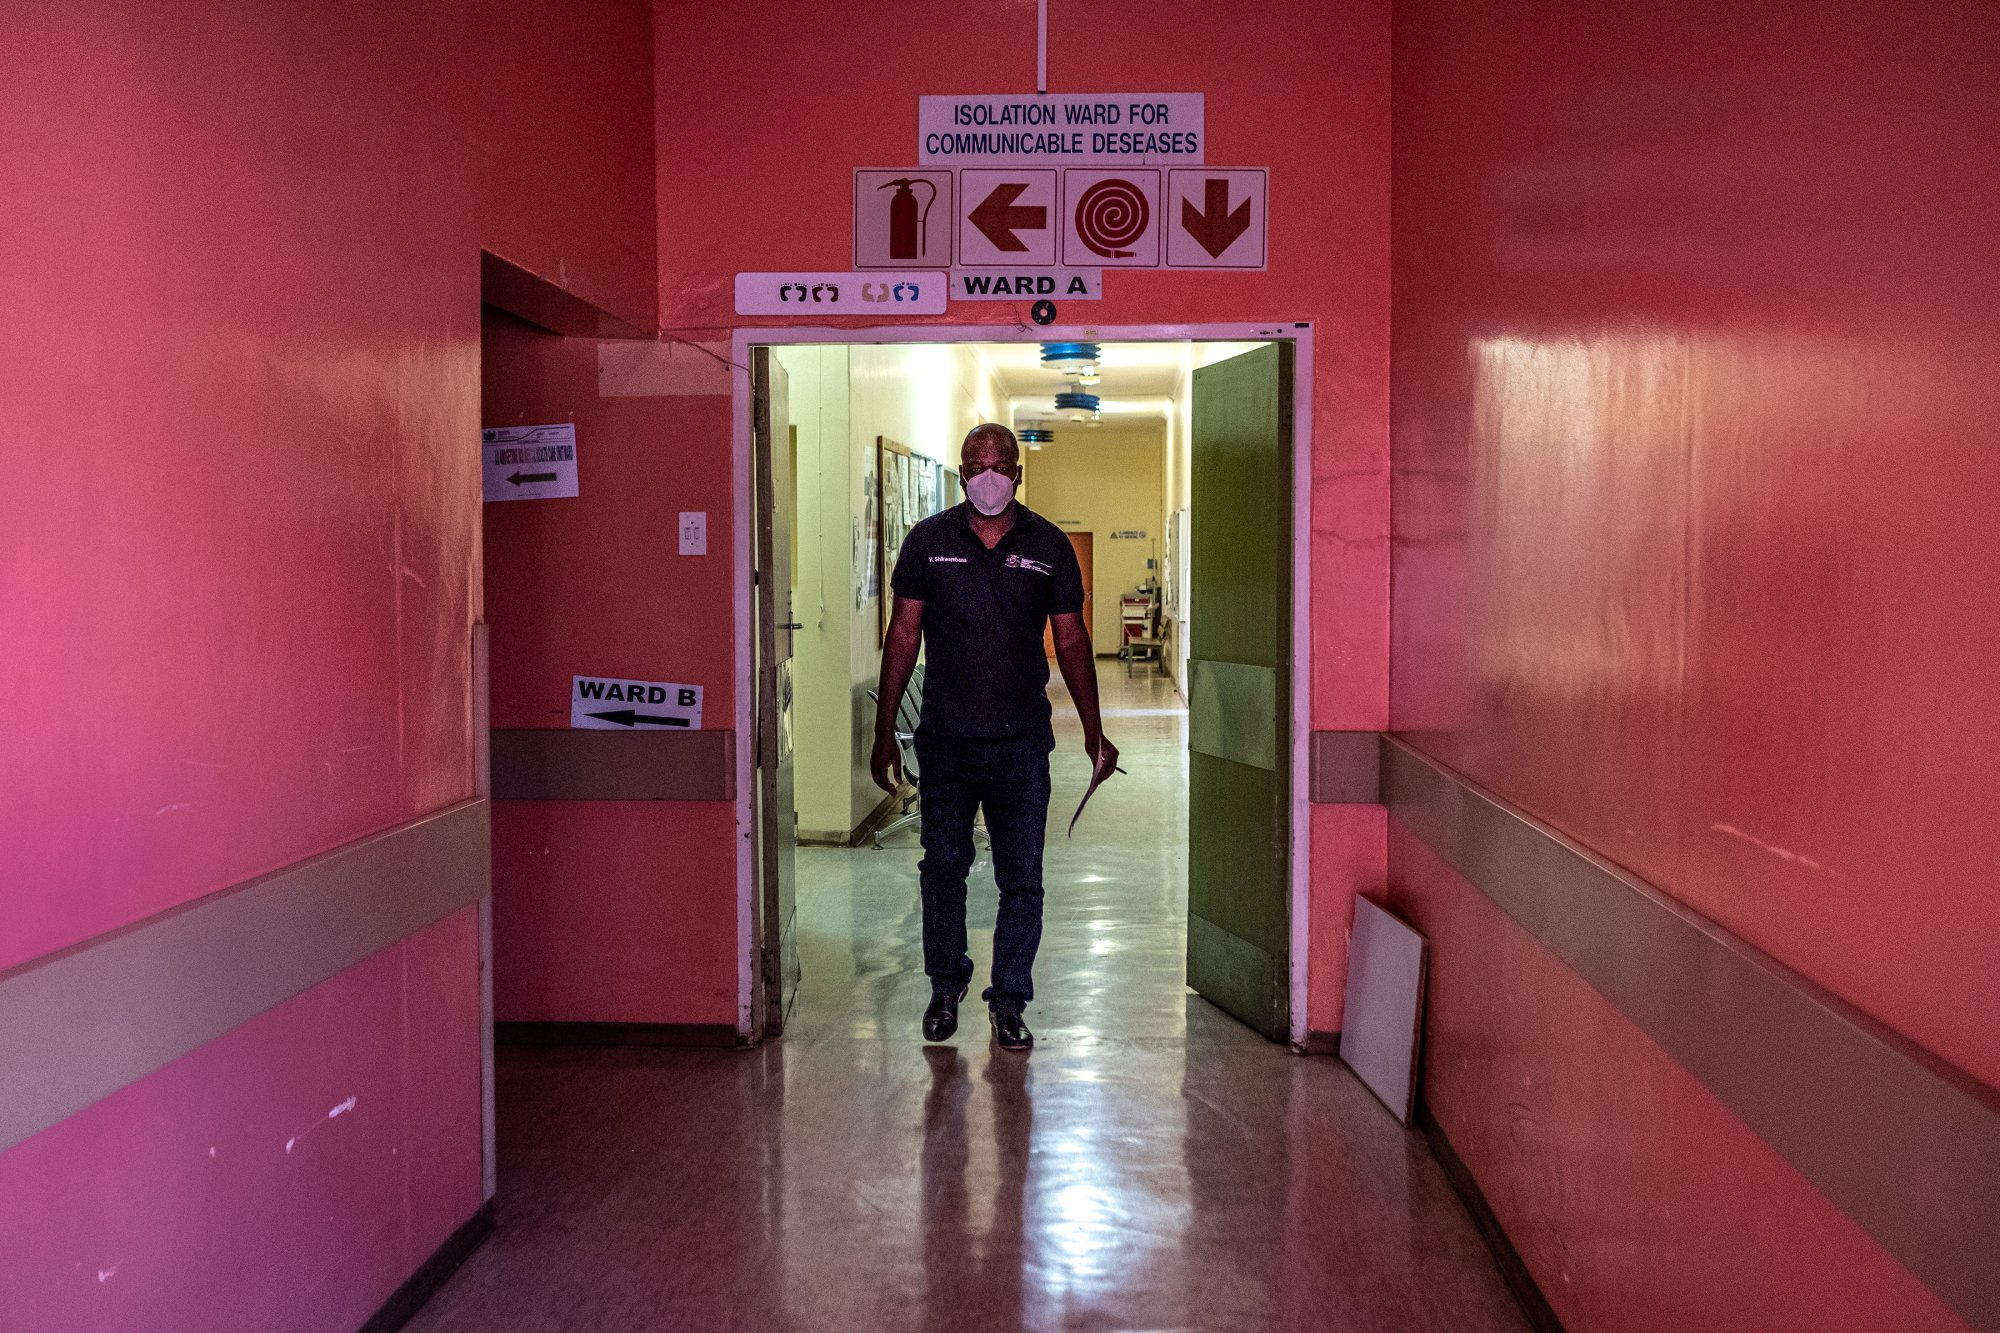 Specialist ICU Nurse Vicky Shikwambana, who is also the COVID-19 Ward Manager walks through the corridors of the Taung Hospital in Taung, the North West Province, South Africa, on Sept. 4, 2020.   Thomson Reuters Foundation/Gulshan Khan